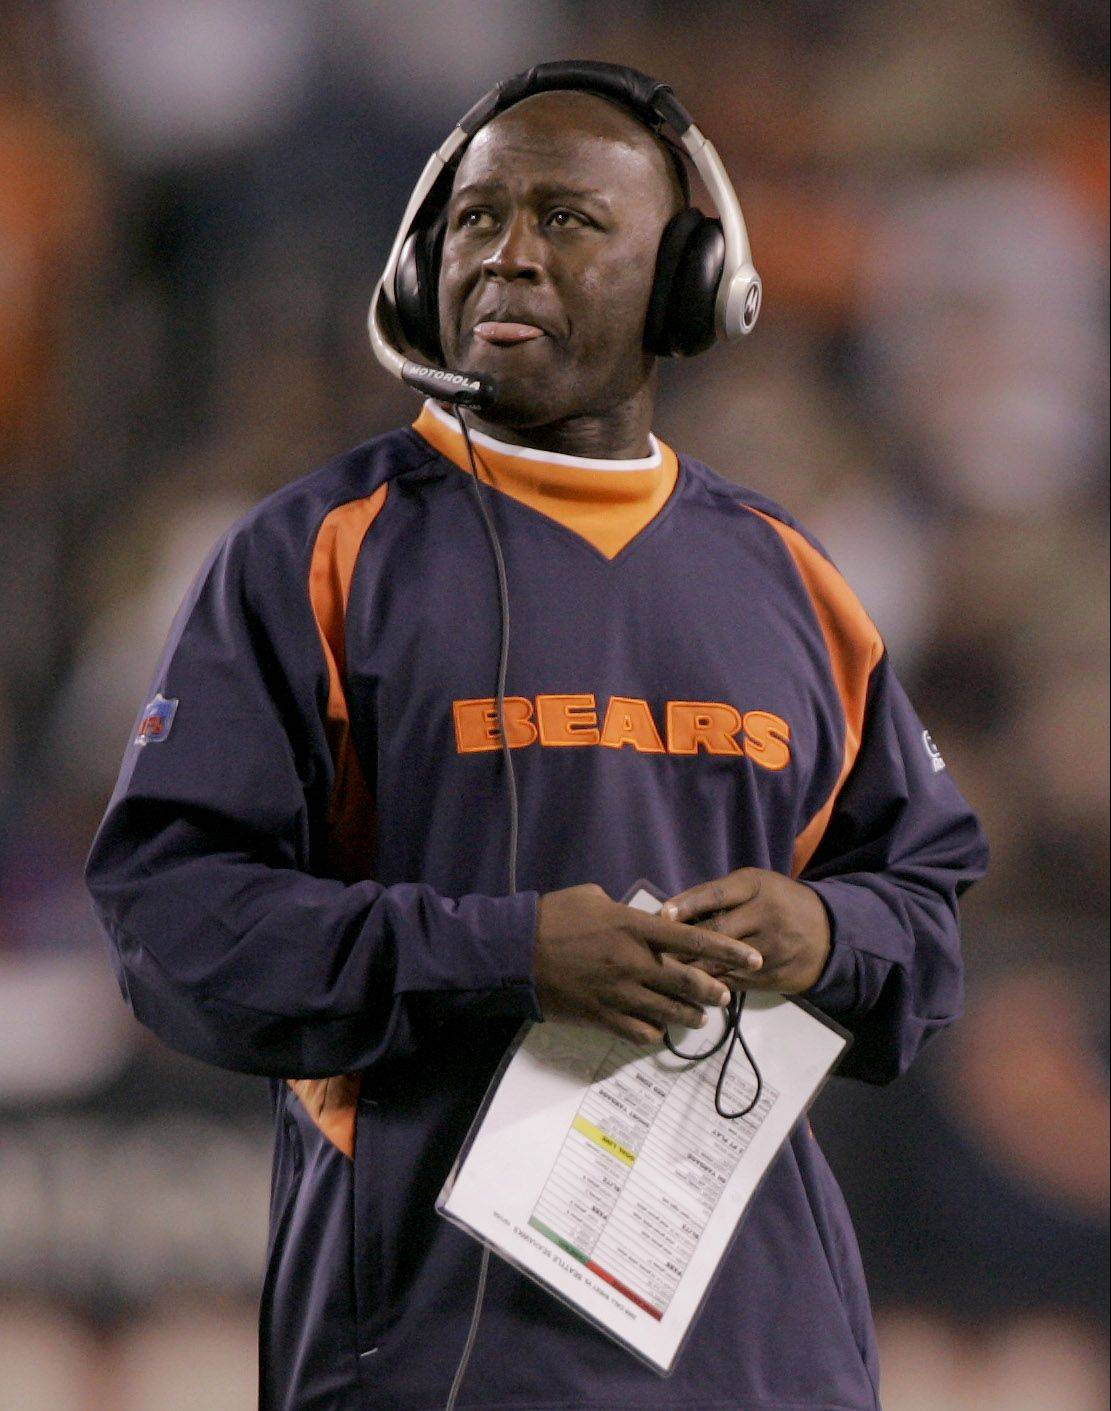 Former Bears coach Lovie Smith will receive a four-year deal to coach the Tampa Bay Buccaneers, according to NFL sources.